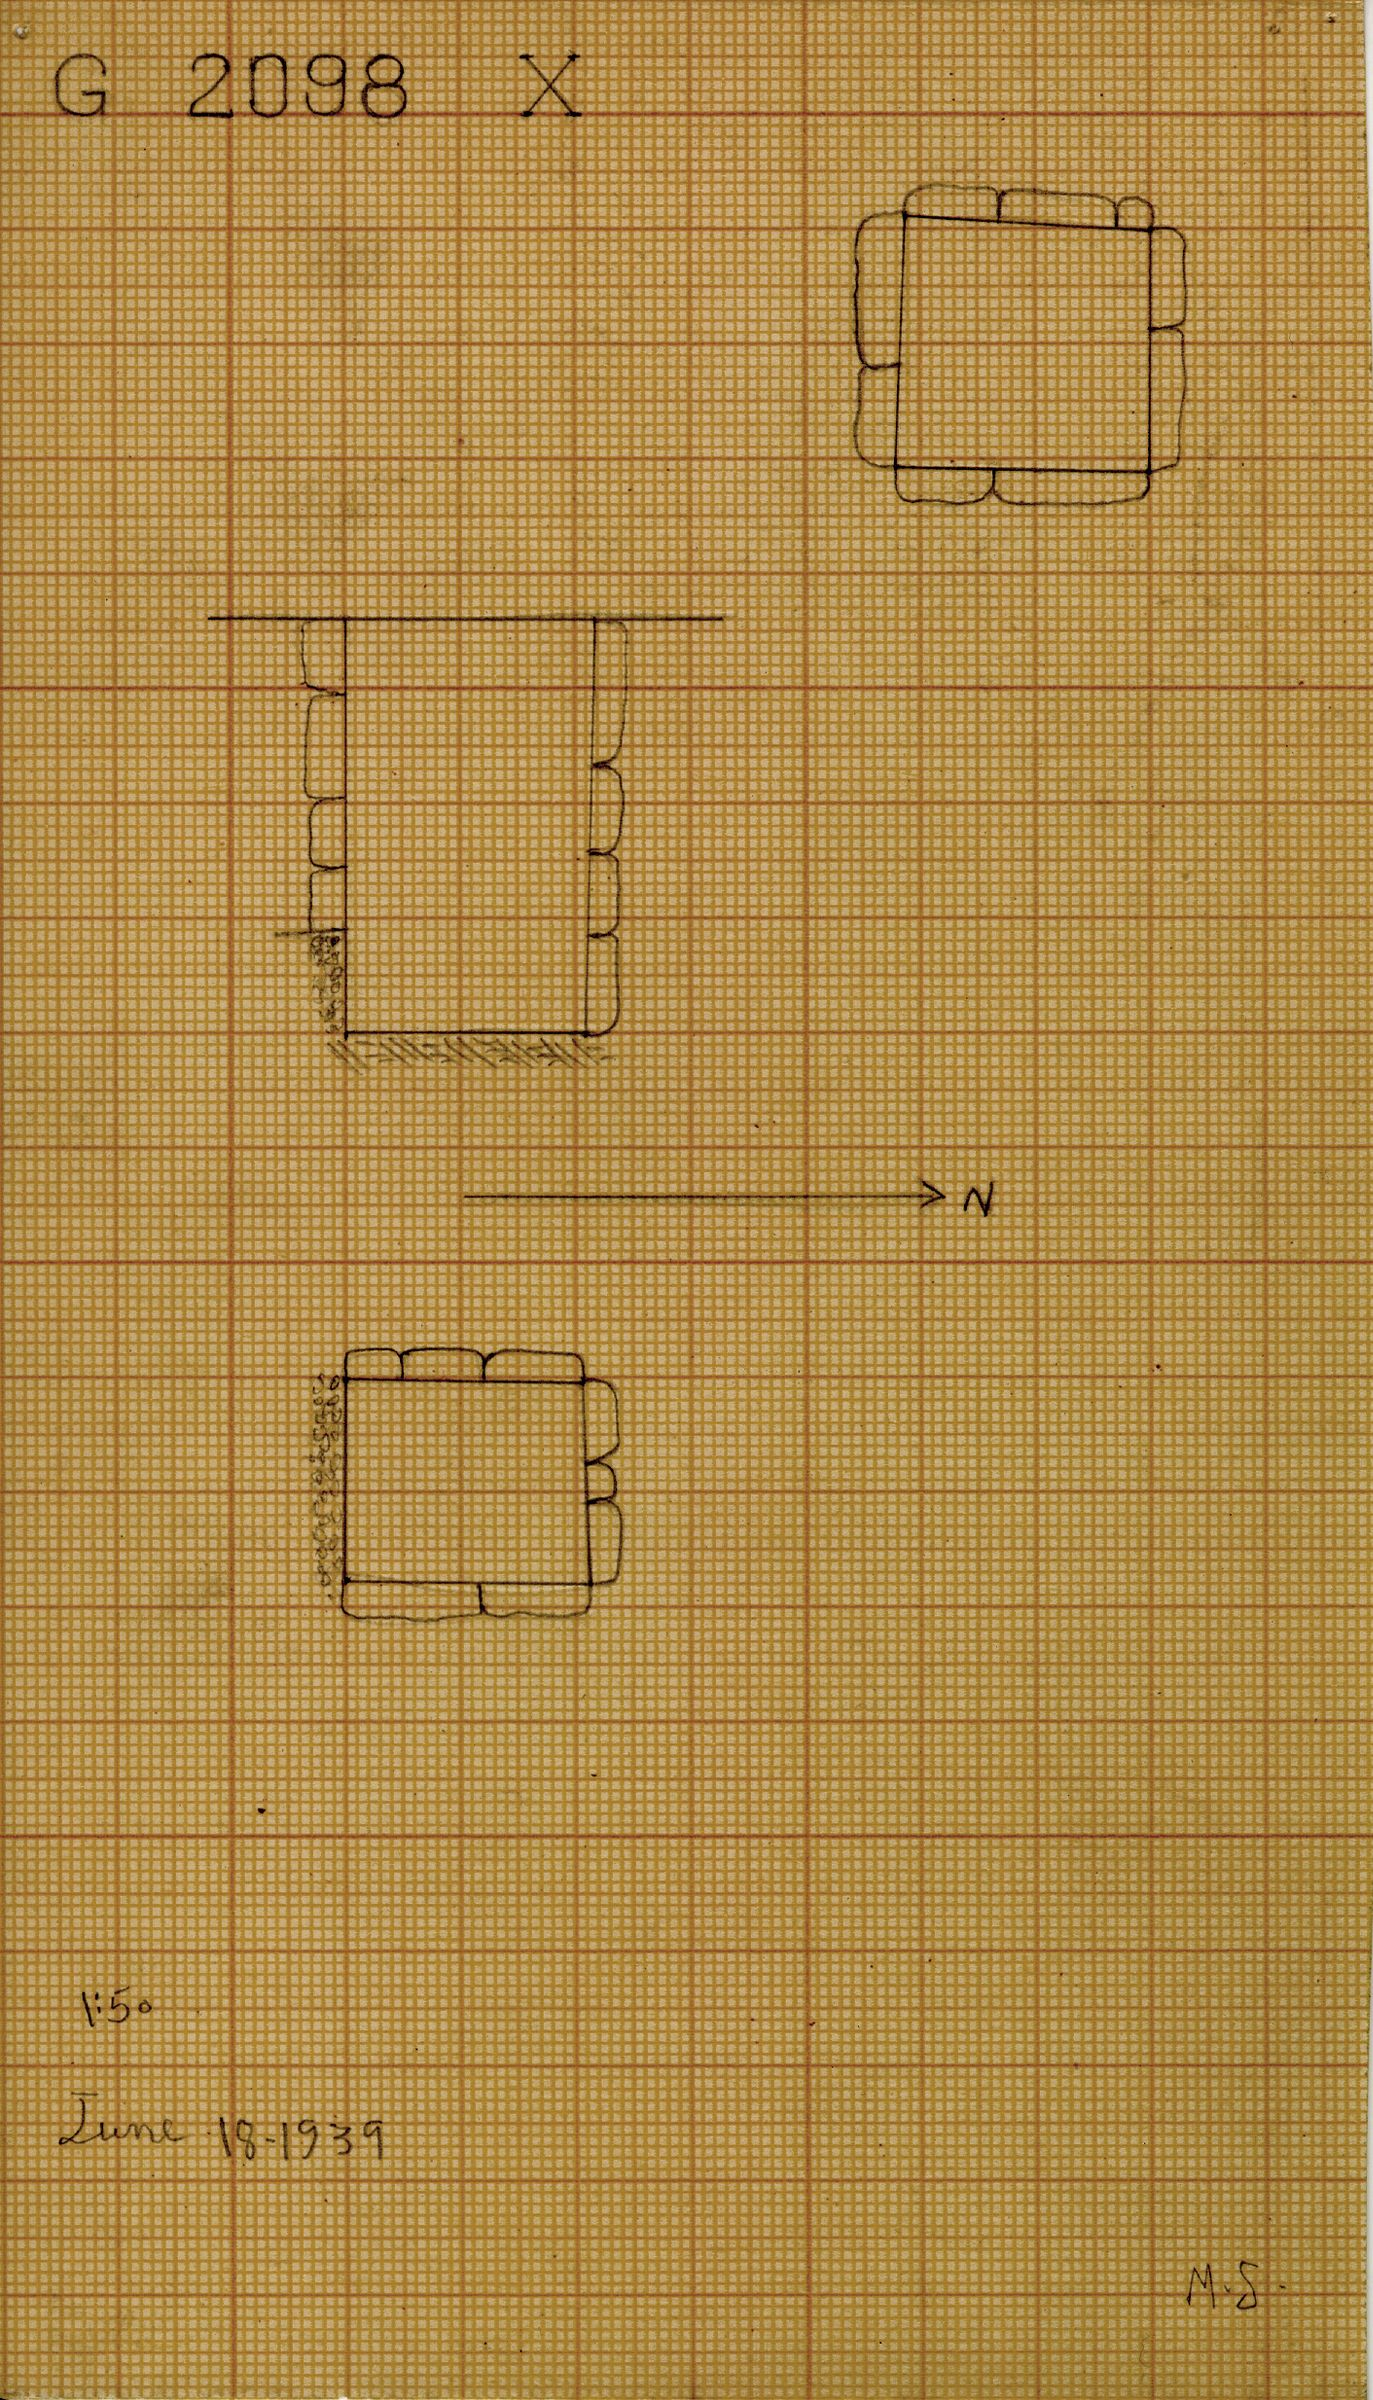 Maps and plans: G 2098, Shaft X